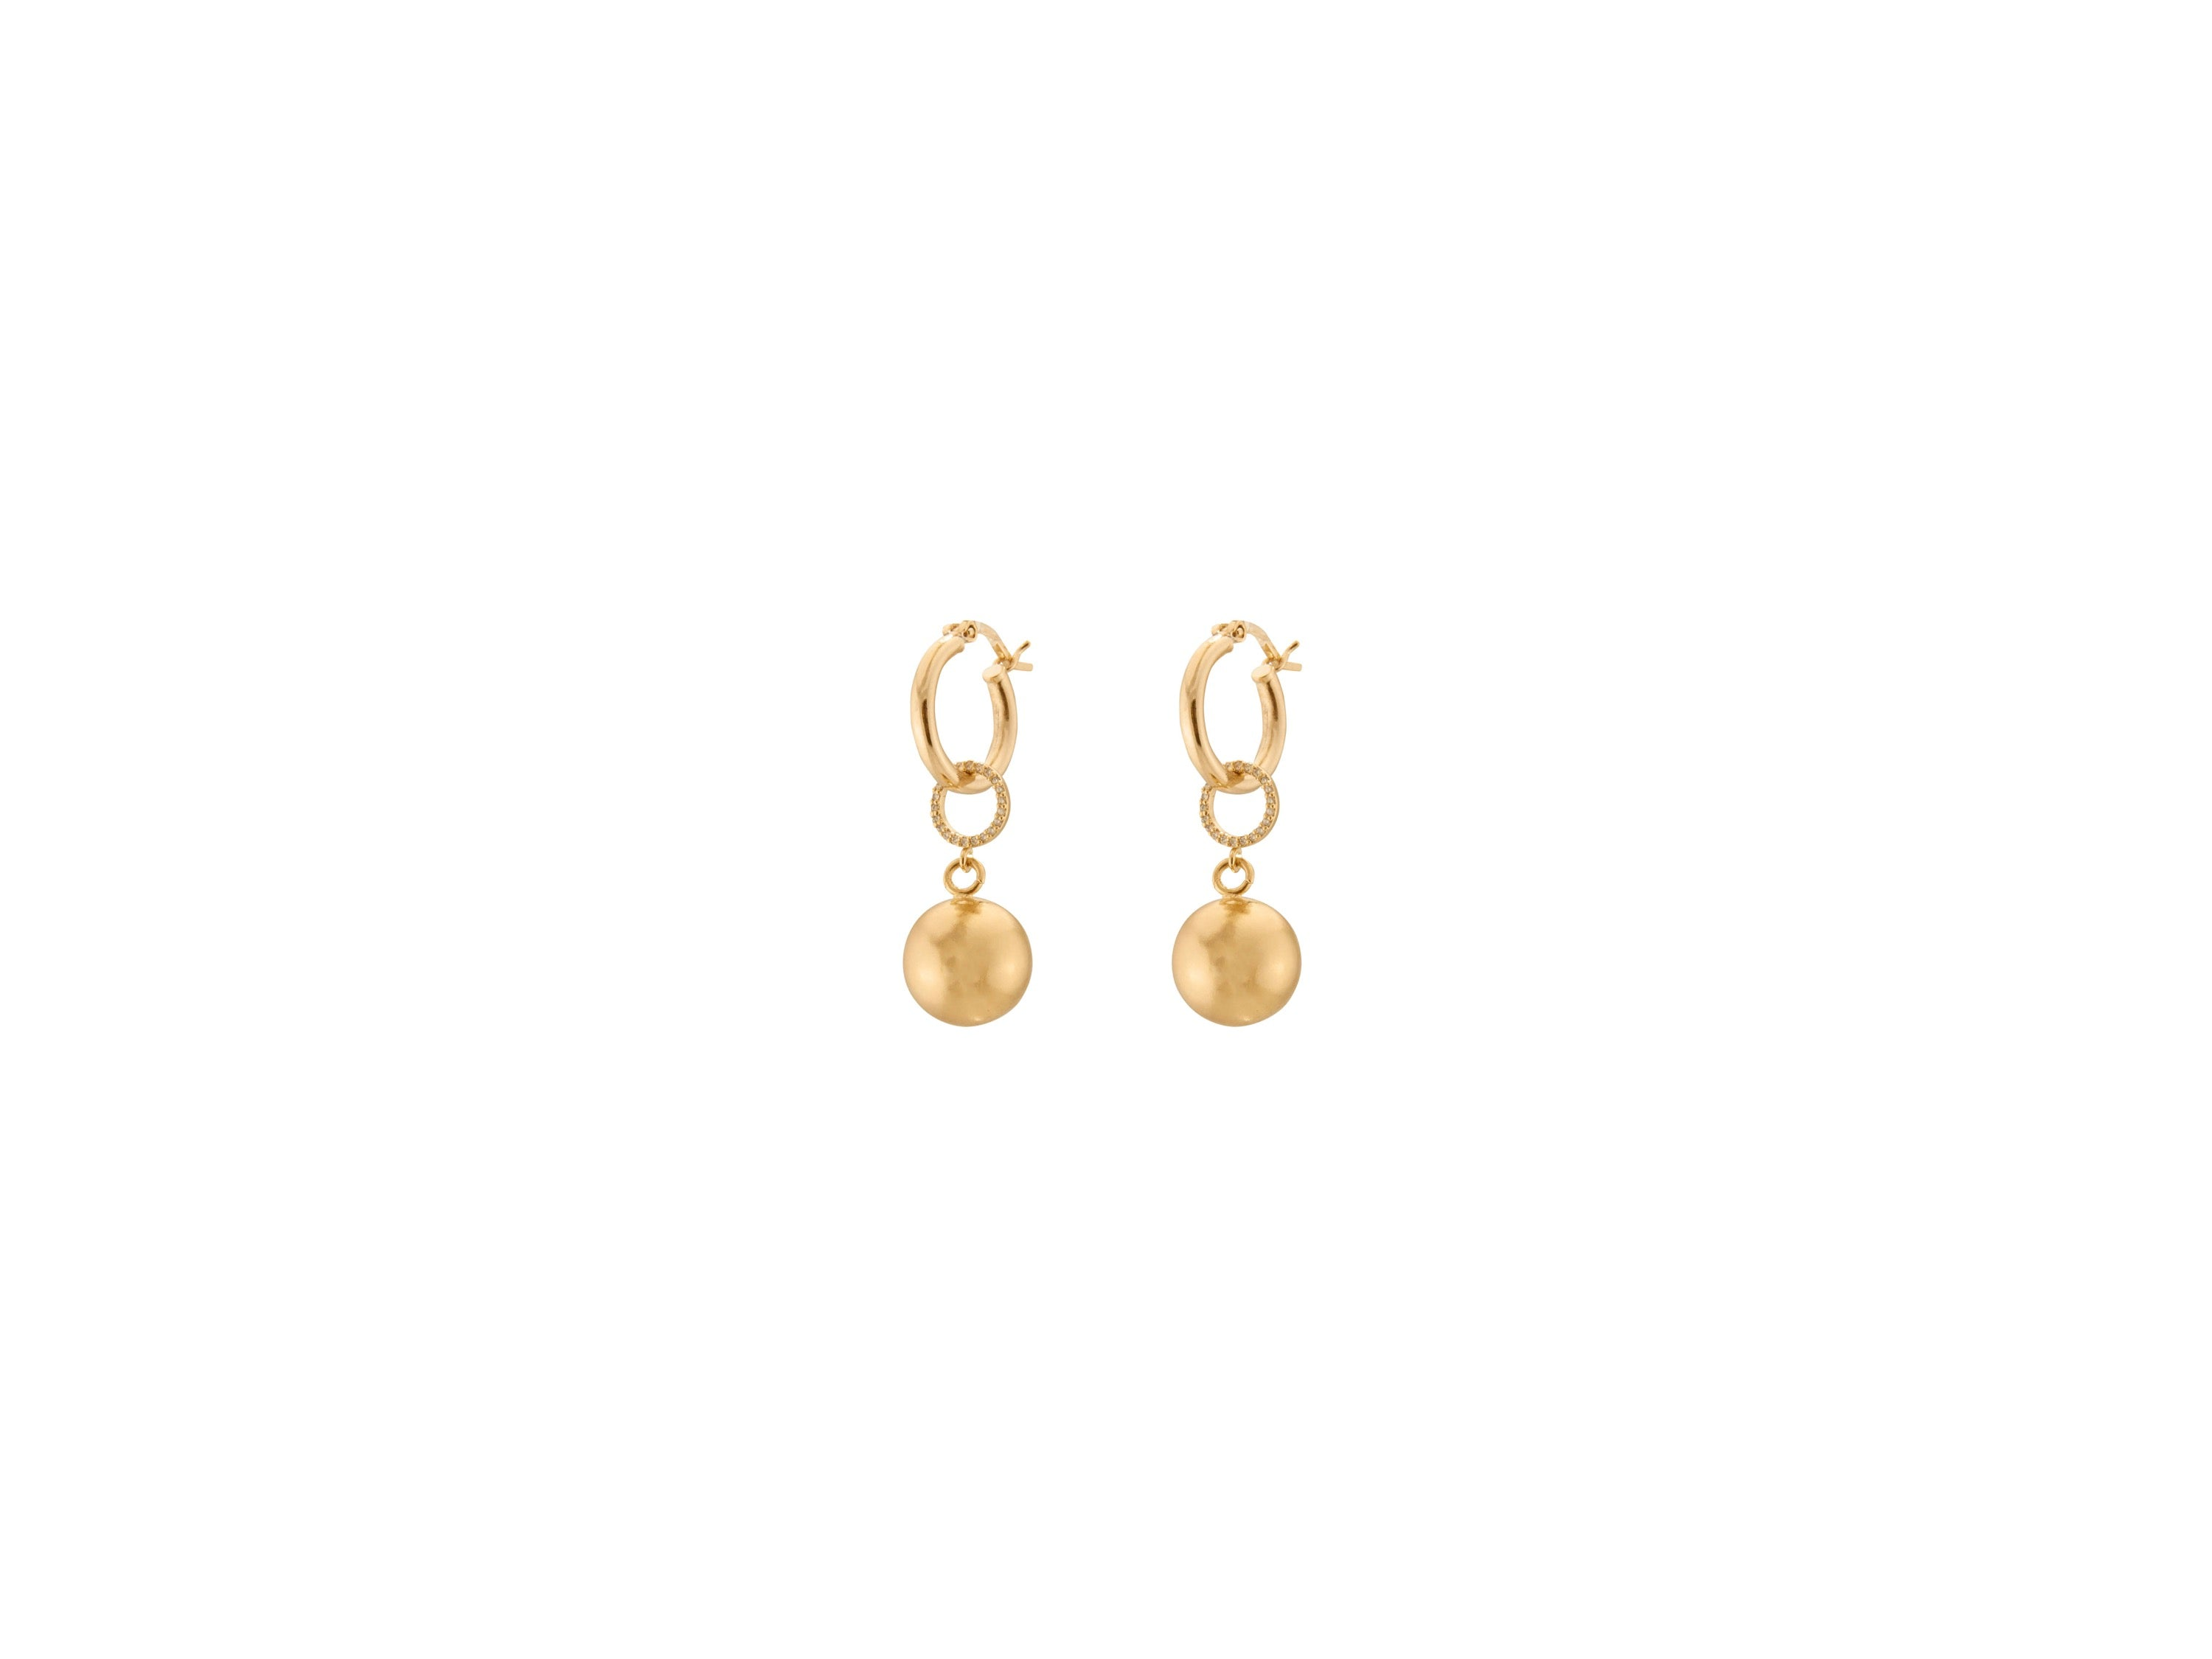 Full Moon Petite Earrings / Gold